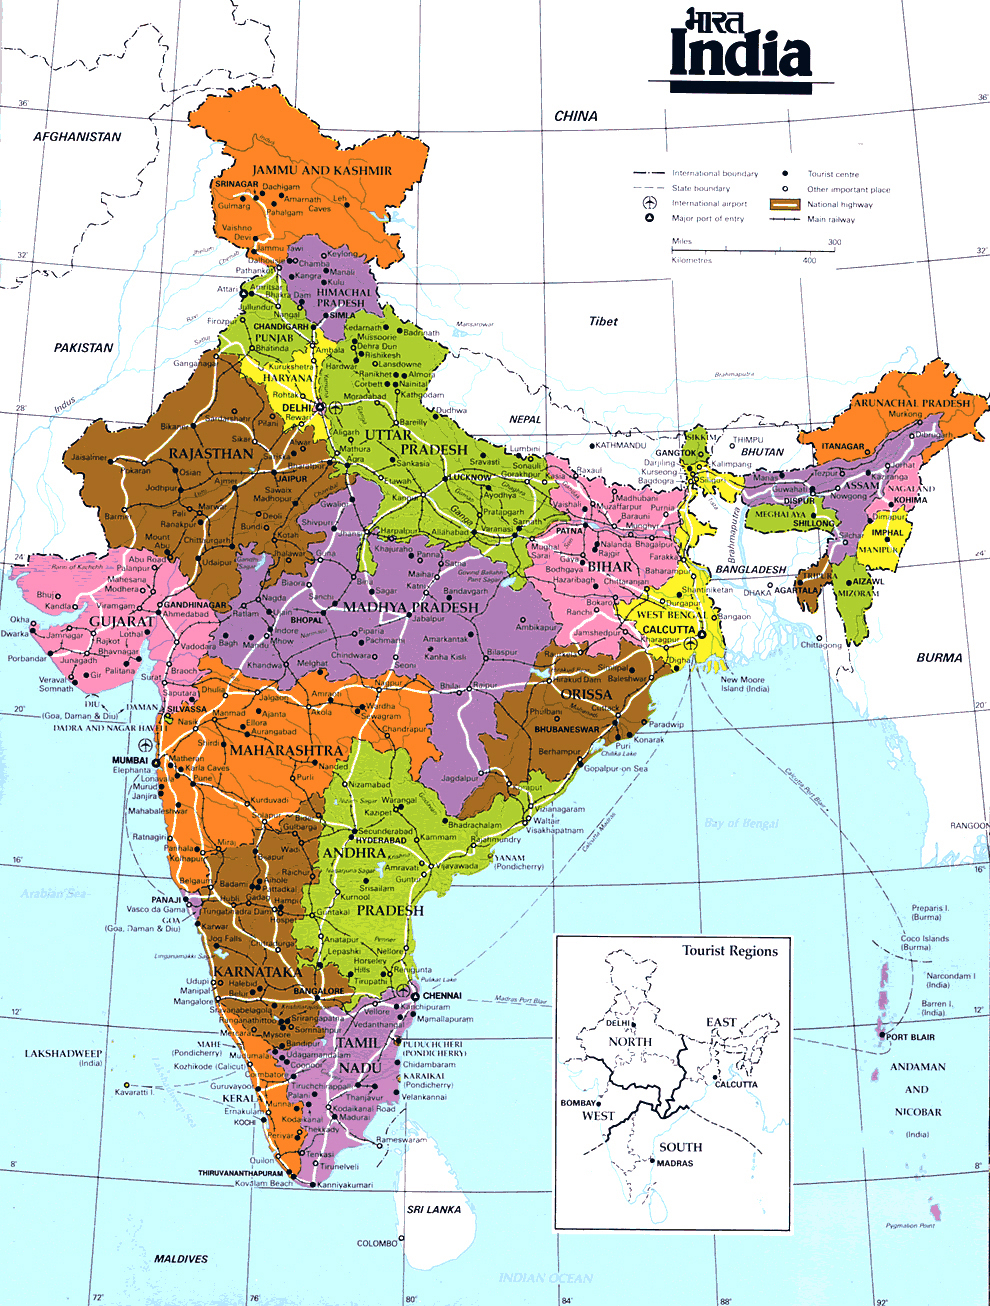 India maps | printable maps of india for download.